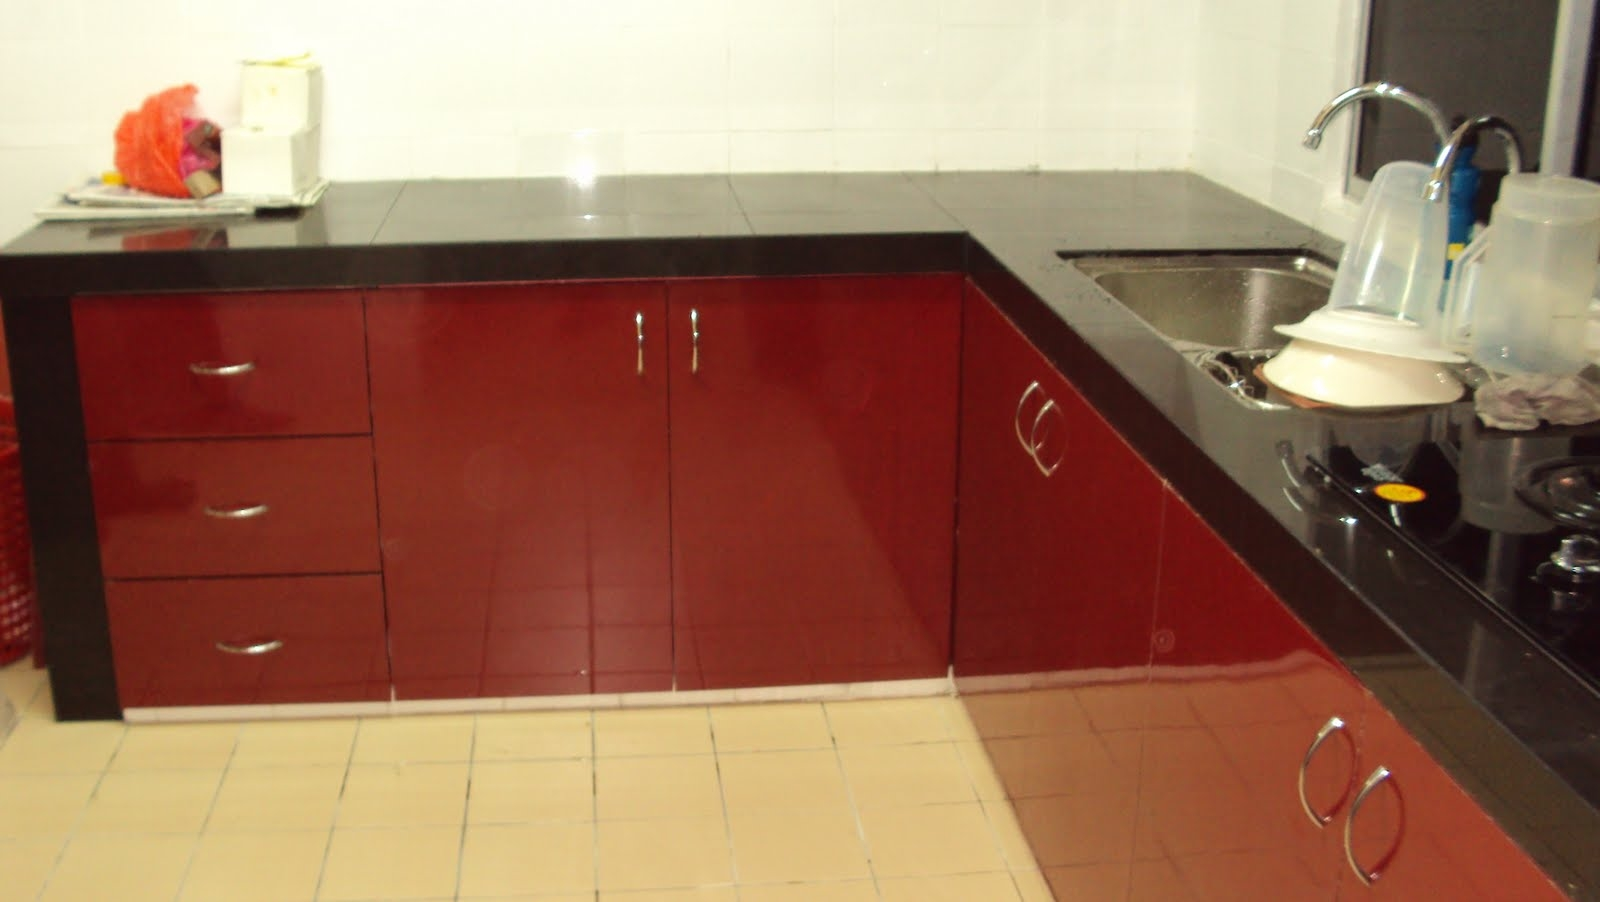 Plastic Laminate Sheets For Kitchen Cabinets